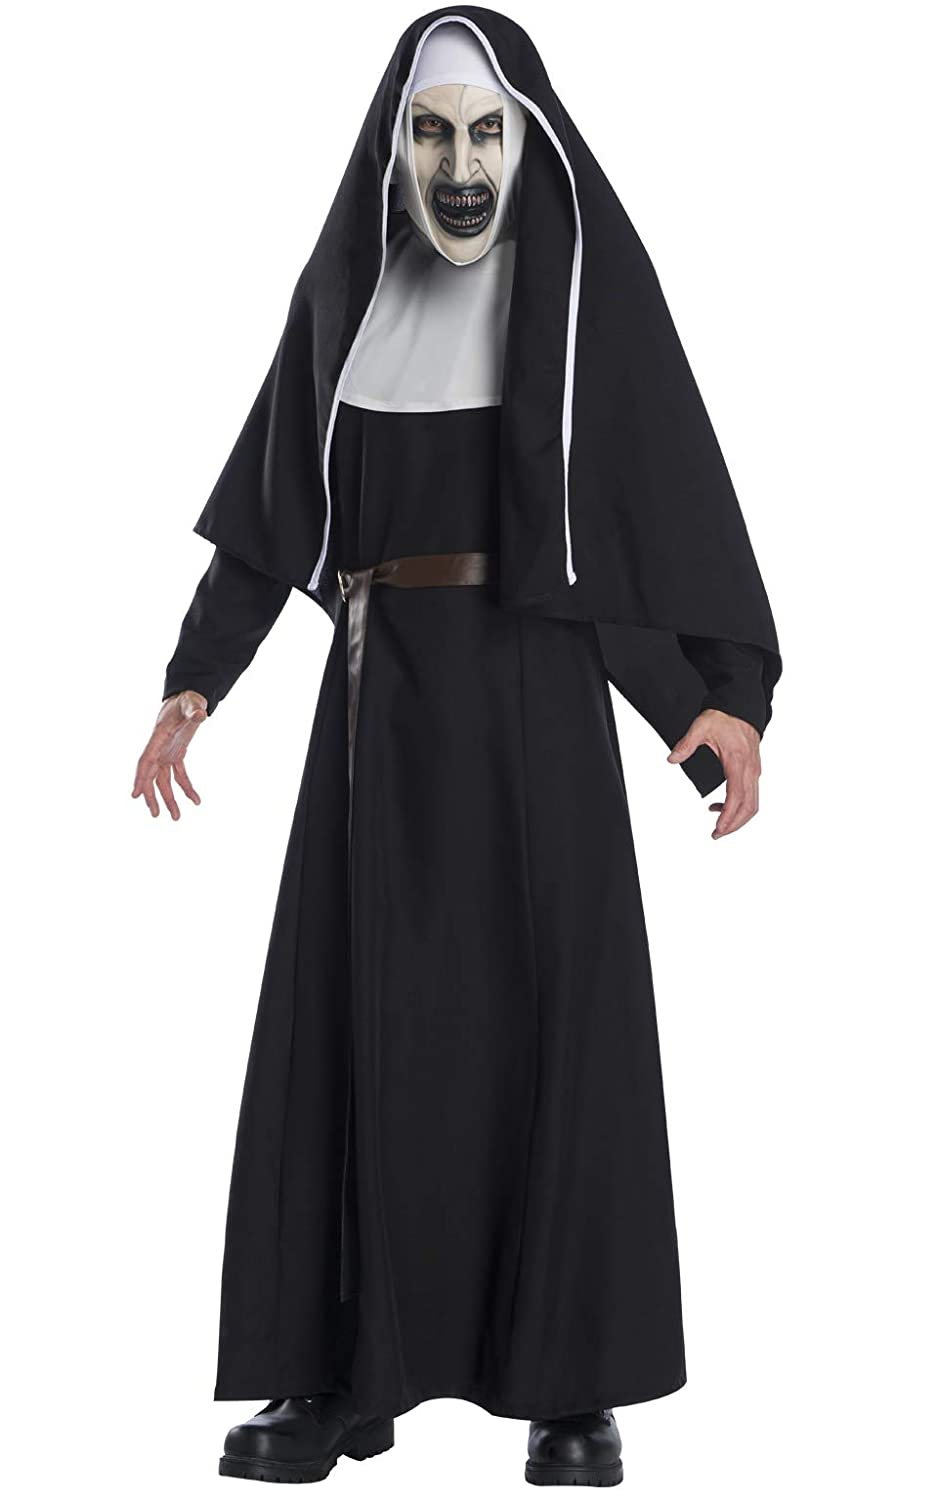 Rubie's Adult Deluxe The Nun Costume Rubies Costume Co. Inc